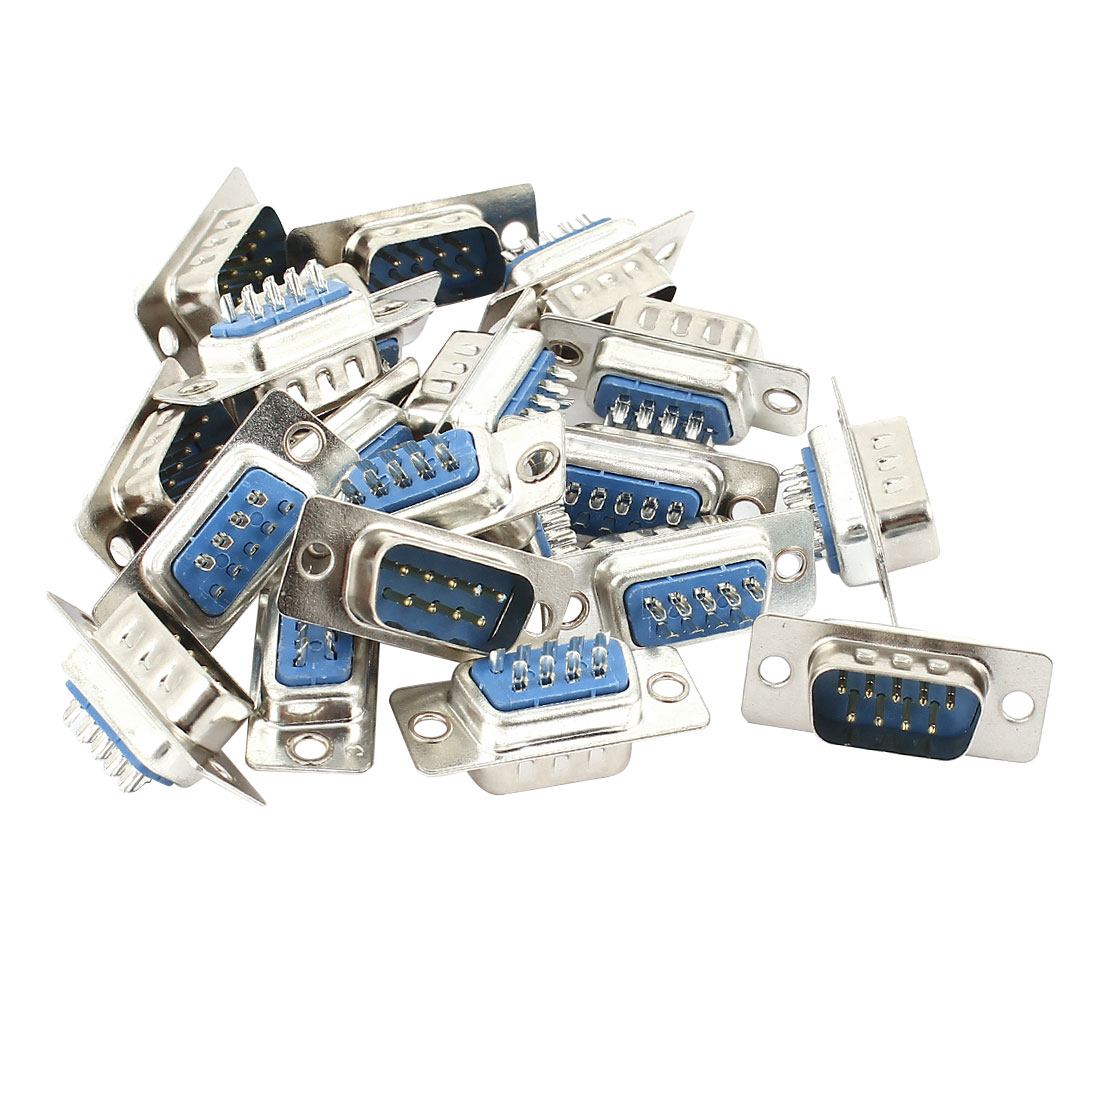 20 Pcs DB9 RS232 Serial 9 Pin Male Connector Adapter